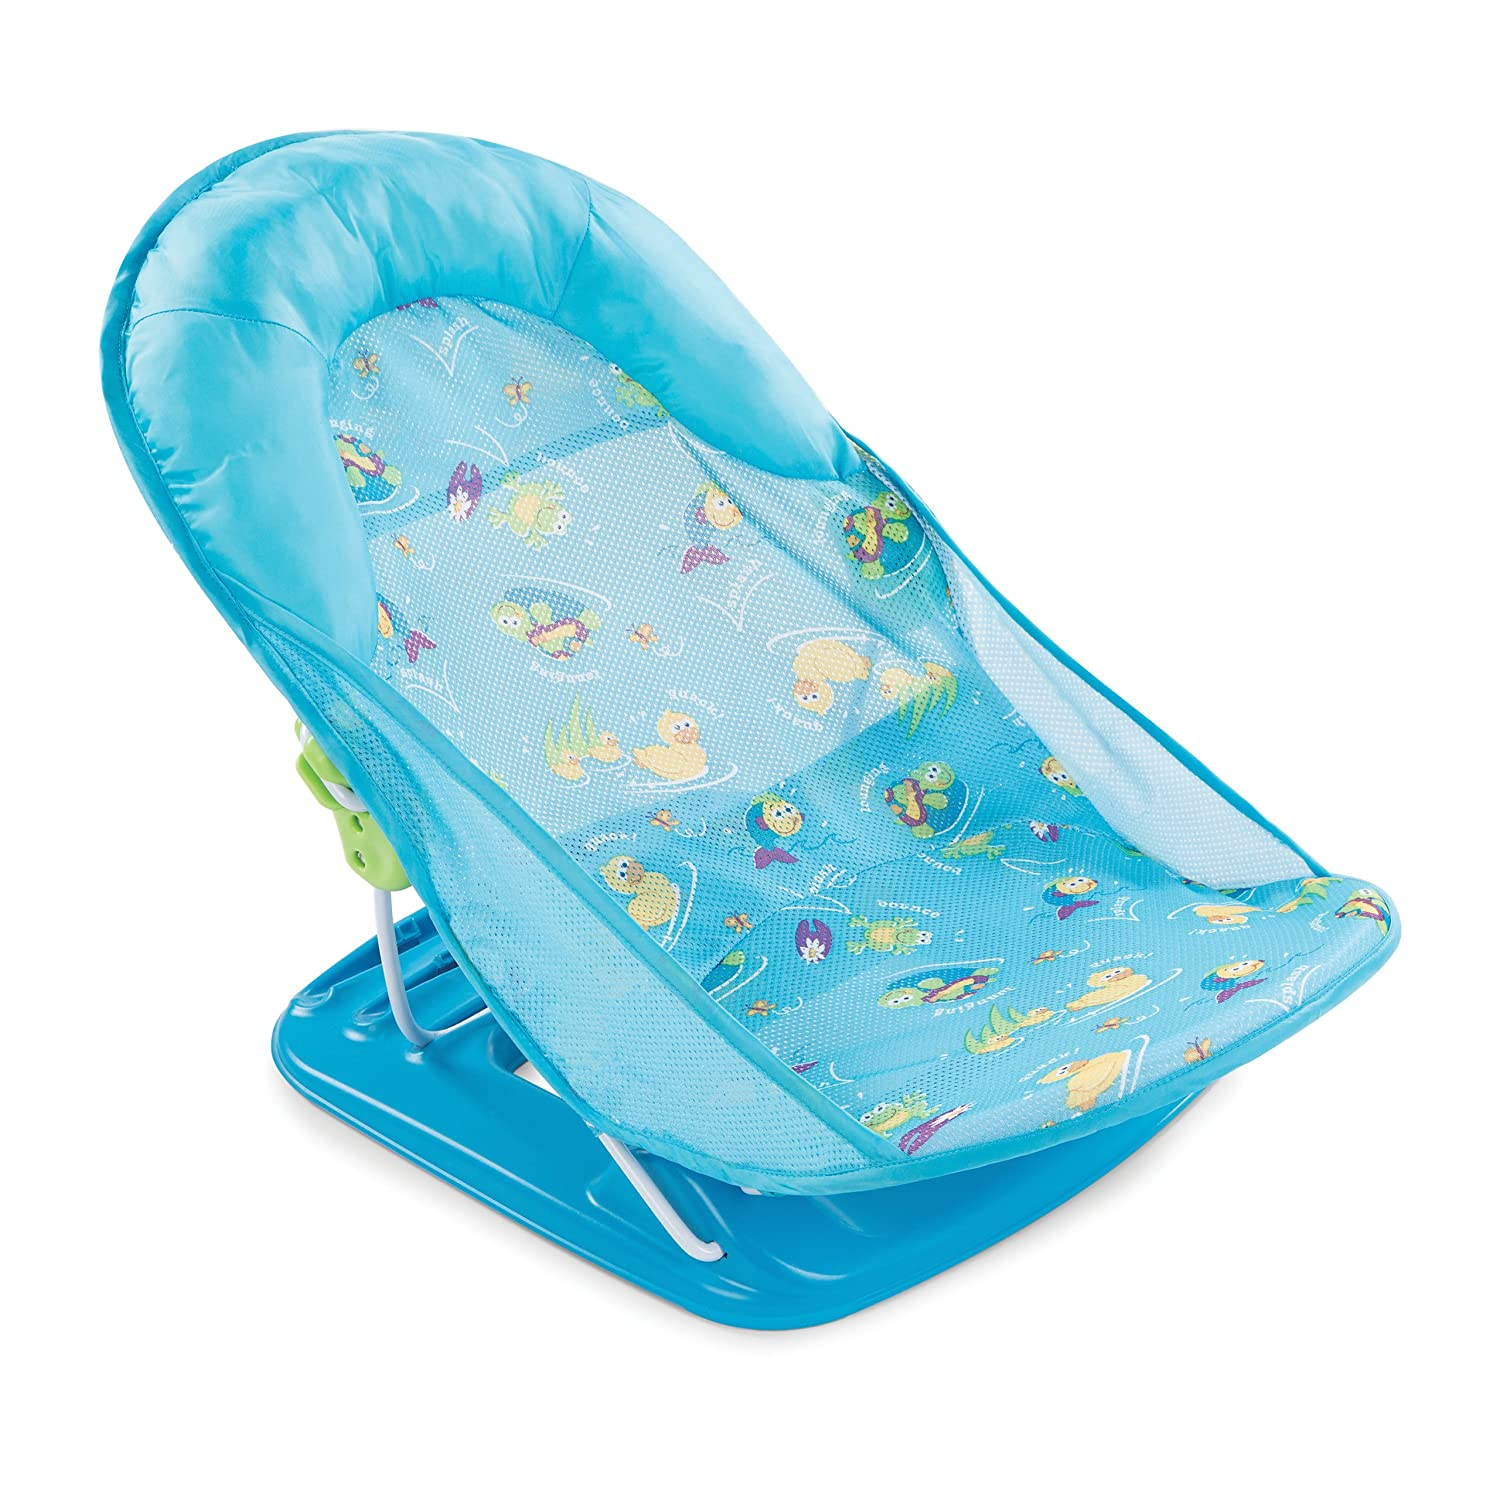 baby bath seat infant tub sink chair recline safety mother helper blue